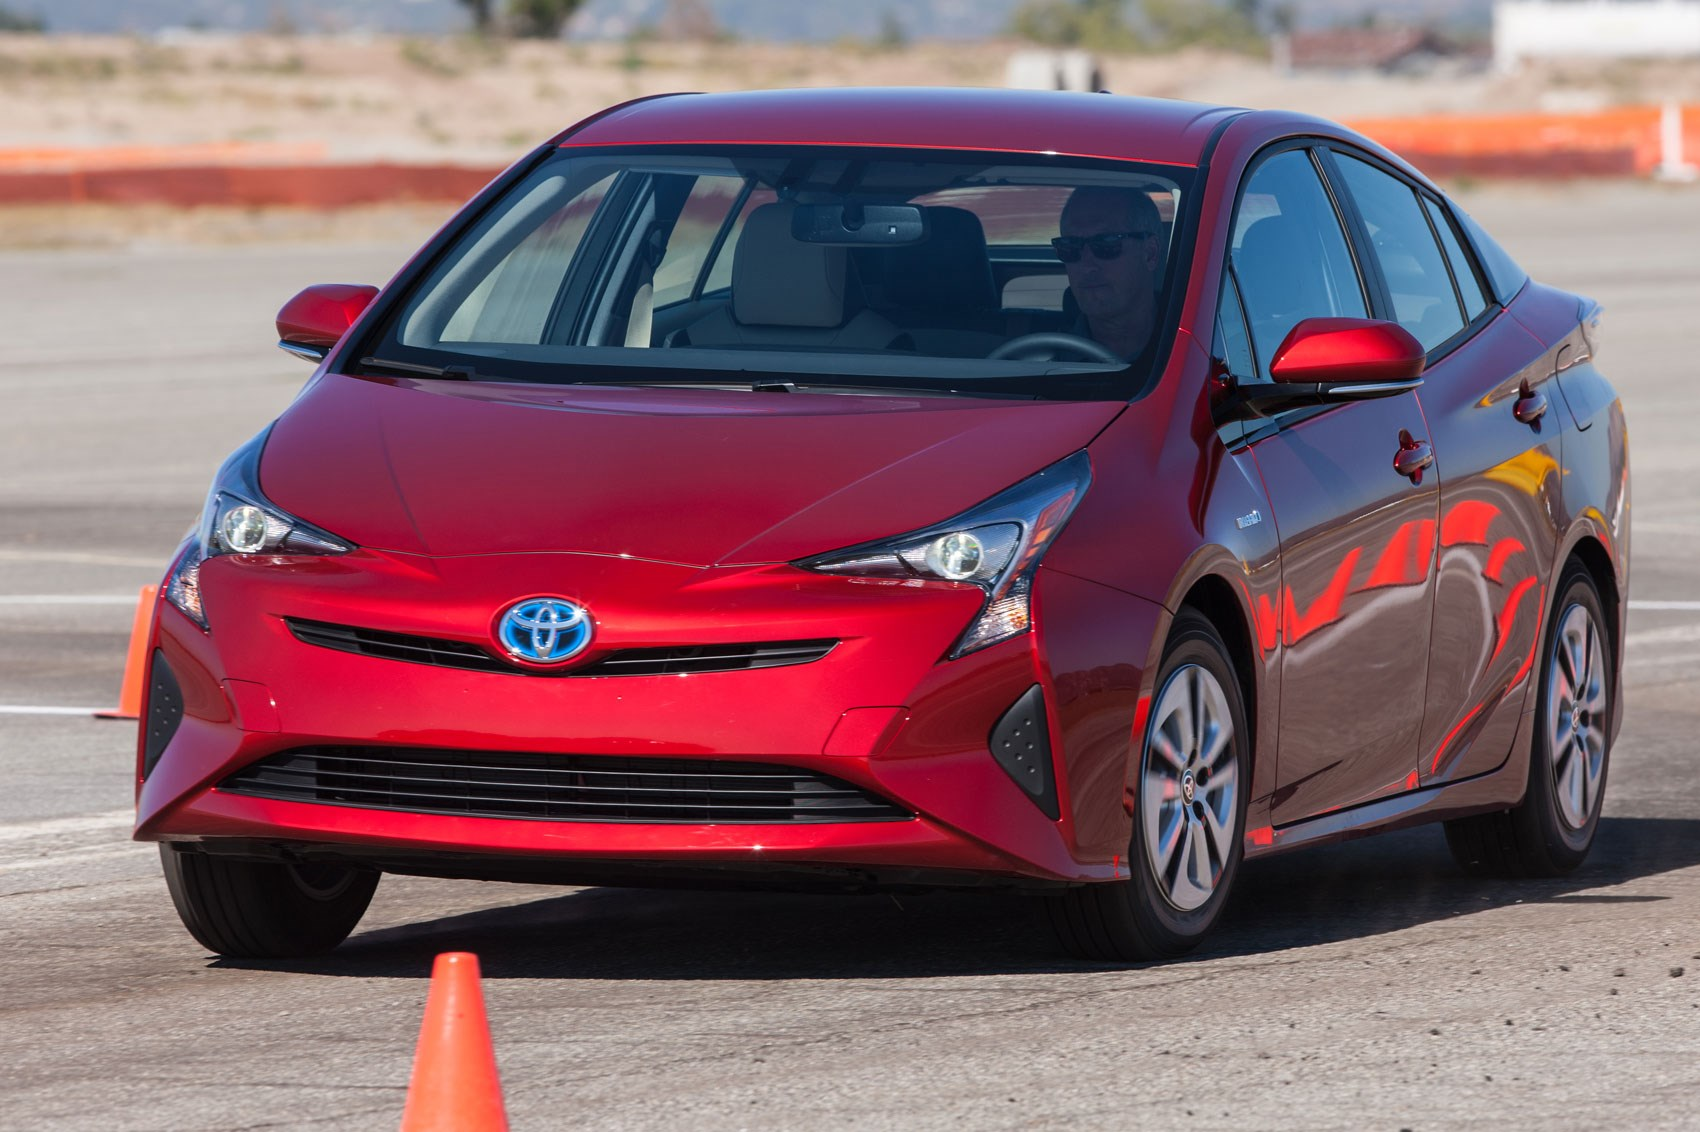 express auto prius uk new steve driving toyota review